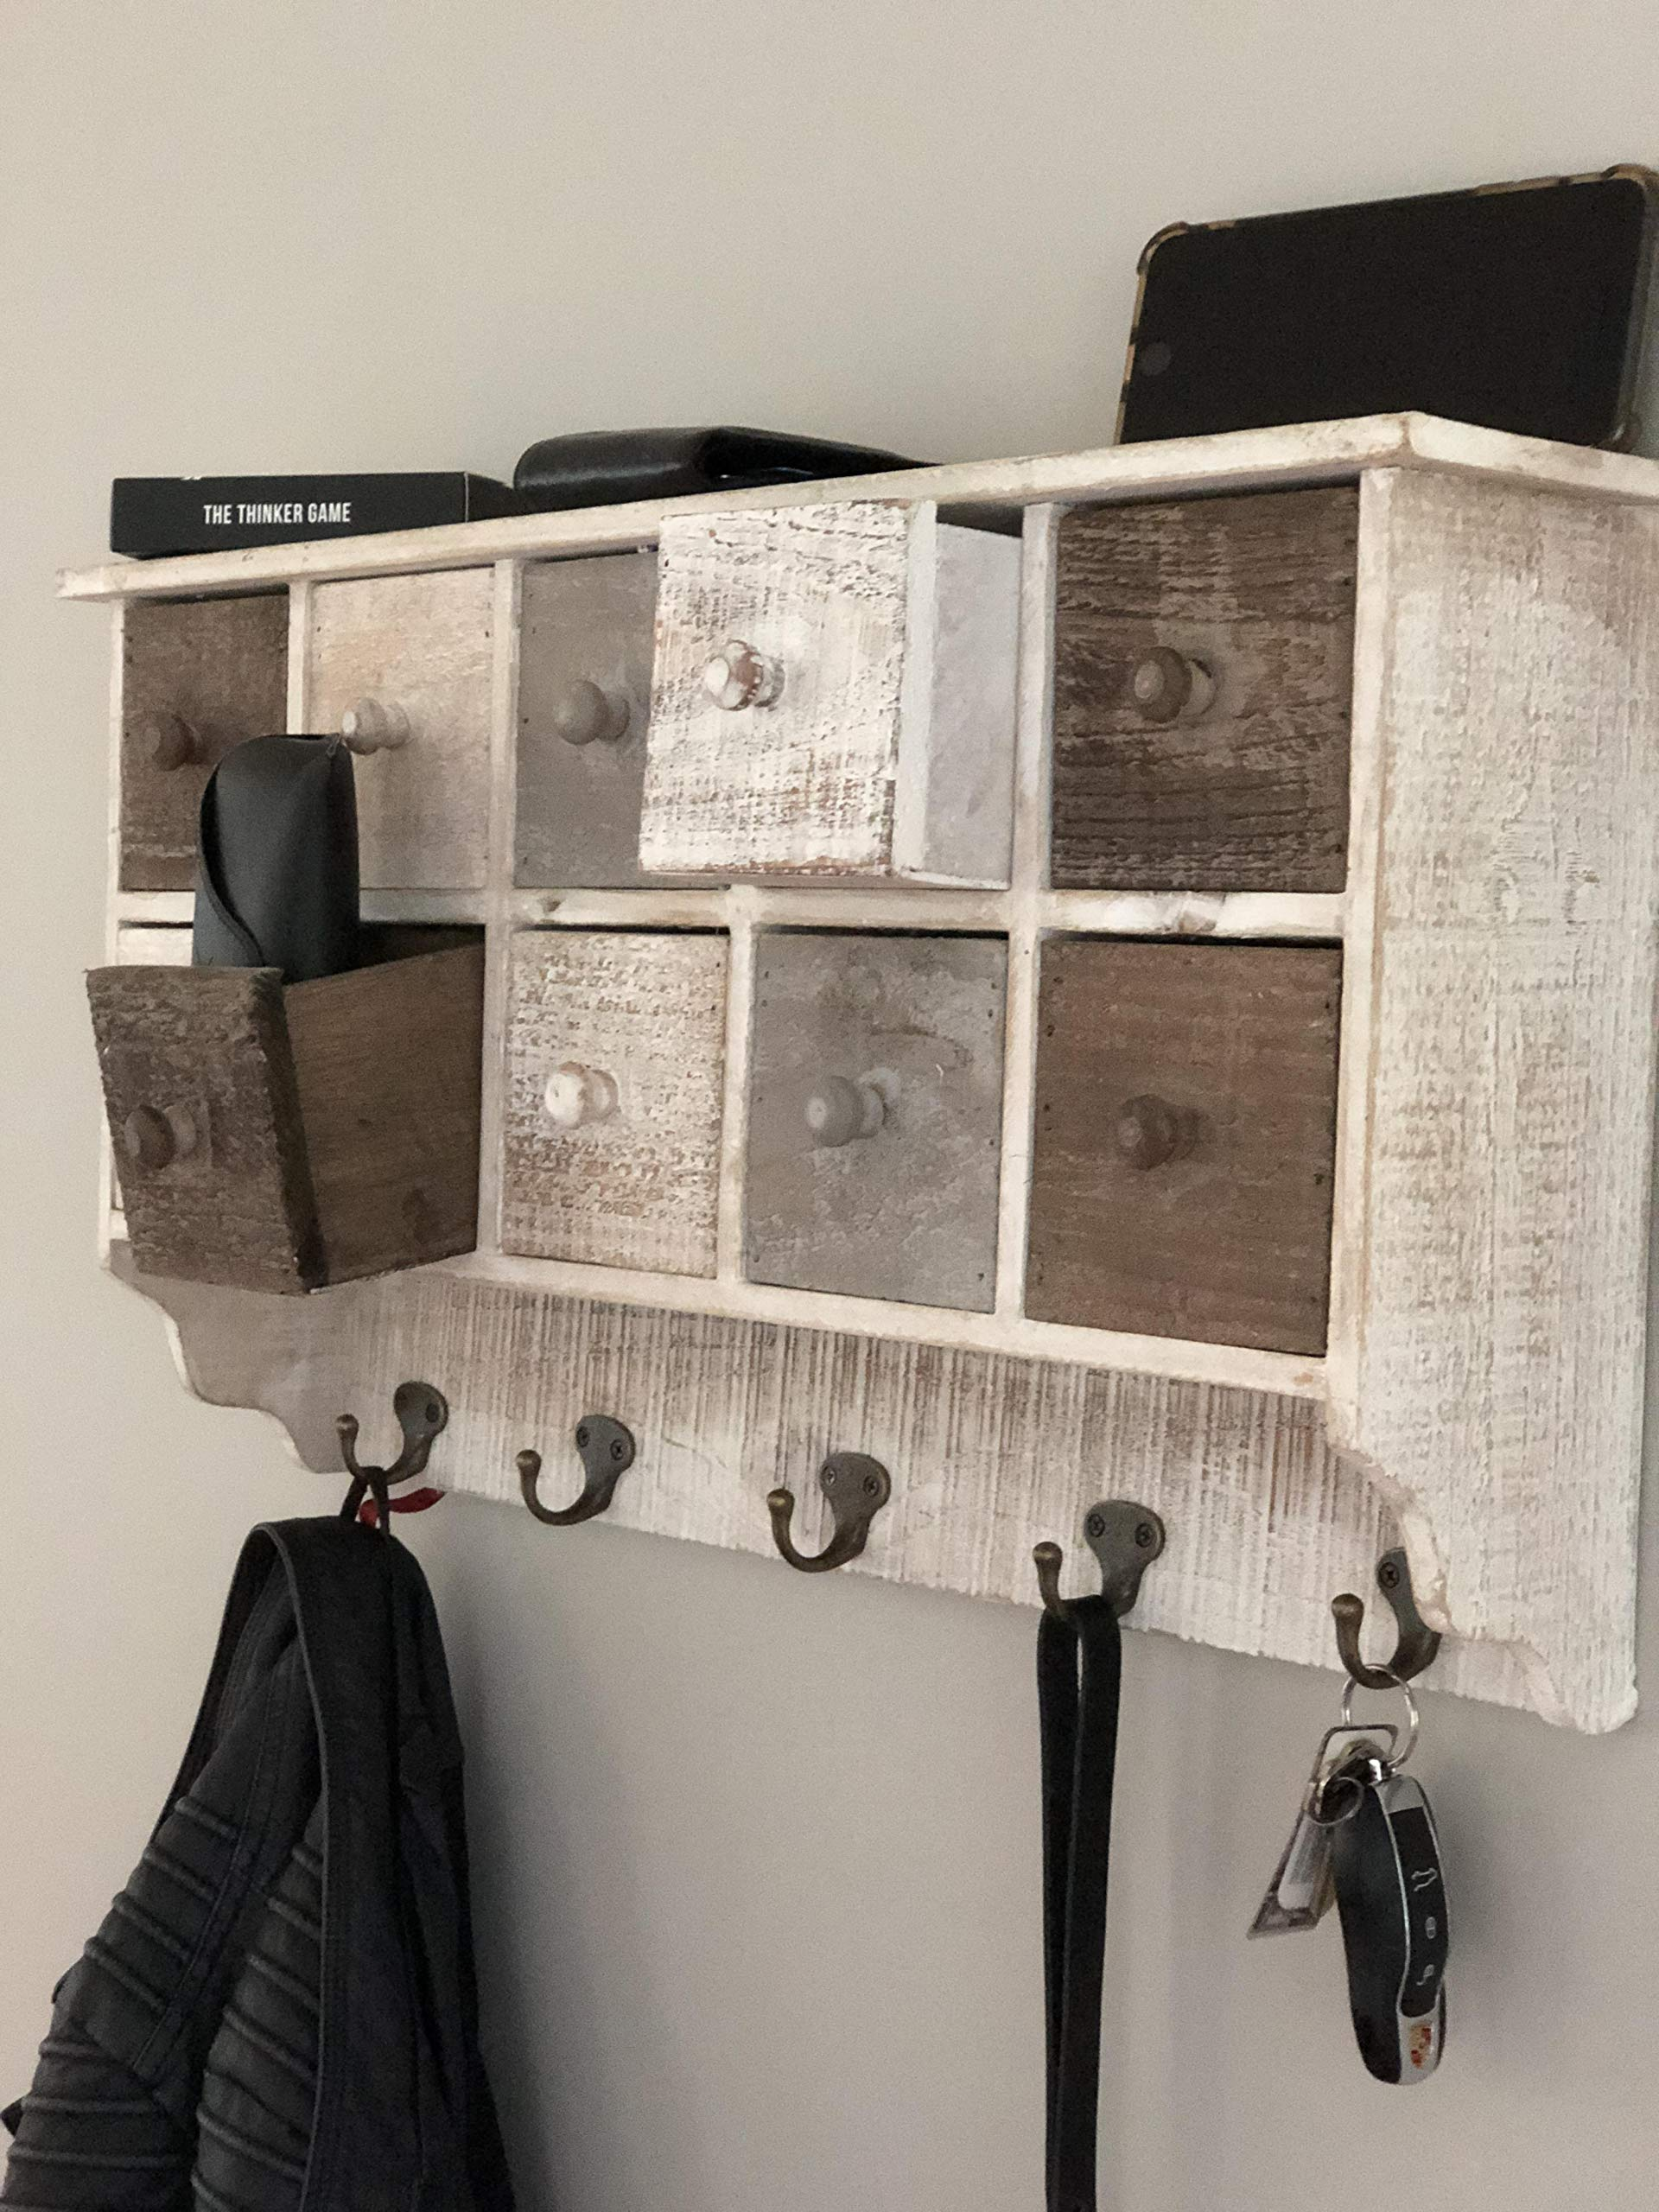 """Avignon Home Country Rustic White Brown Wood Wall Organizer Shelf Rack/Wall Cabinet w/Drawers & Metal Hooks Key Hook - DIMENSIONS: 22.5"""" wide, 13"""" high, 5"""" deep. 10 sliding cube drawers each measuring 3.5""""x3.5"""" 6 key hooks which can also be used to hang coats or jackets or hats as an entryway organizer - wall-shelves, living-room-furniture, living-room - 91xVLoYx1BL -"""